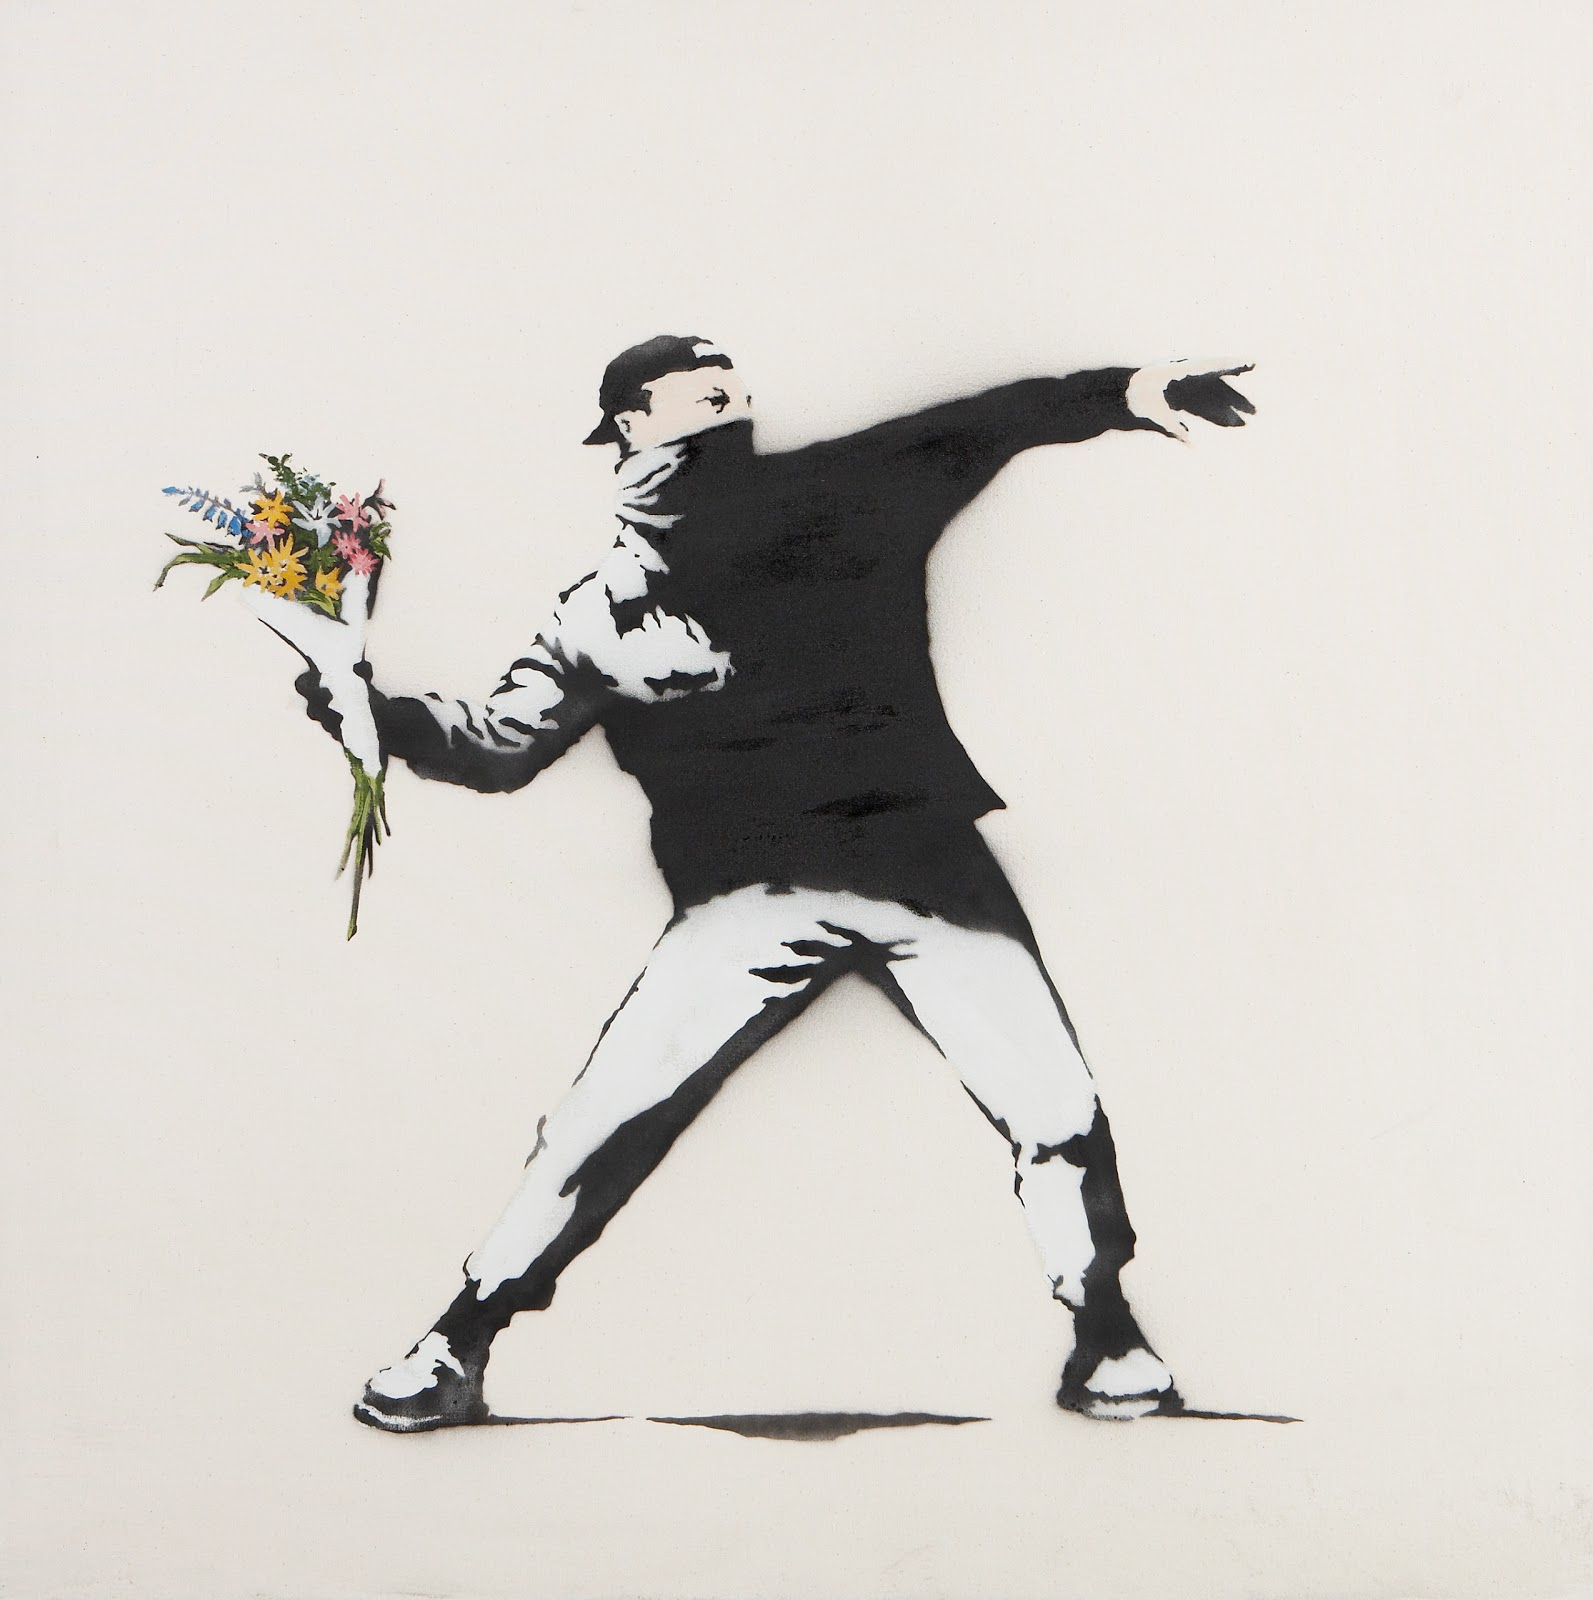 Aerohaveno Review The Art Of Banksy